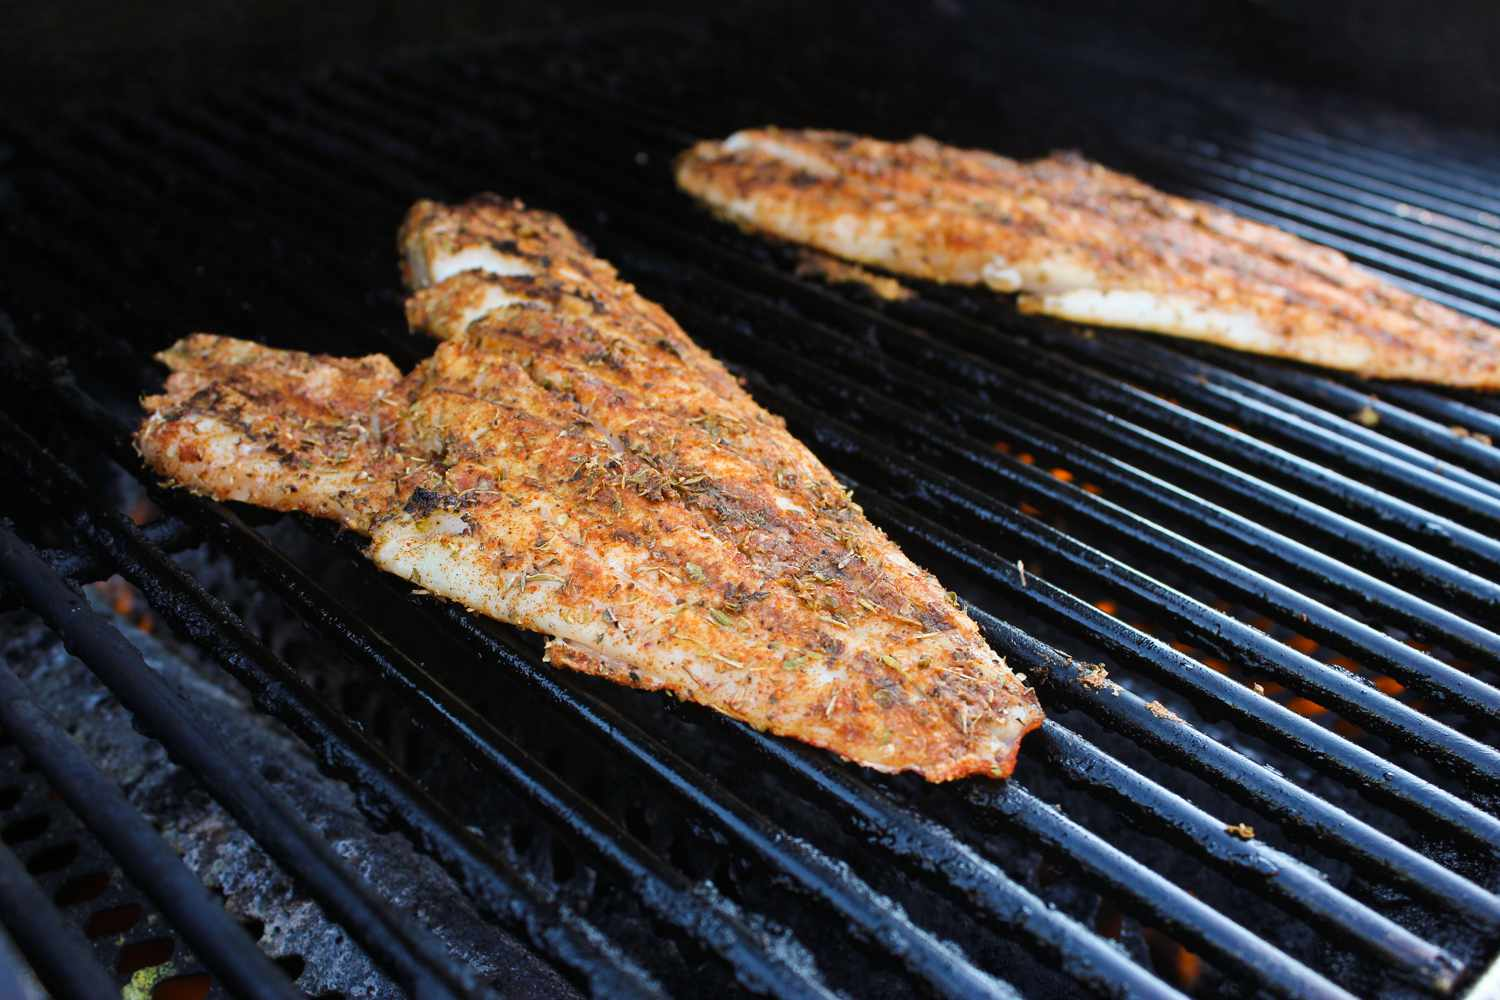 Red snapper flipped over on the grill